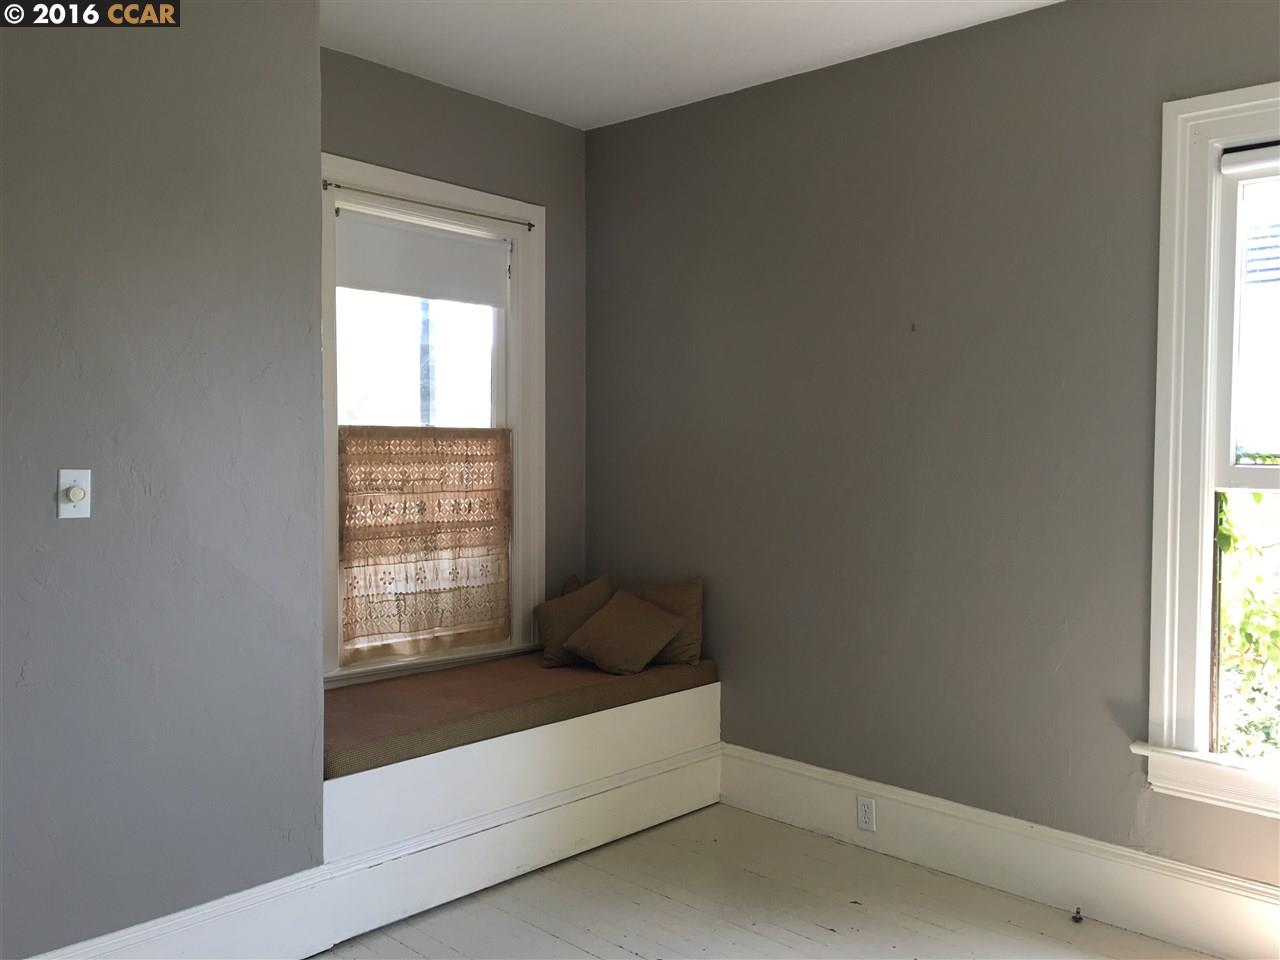 Additional photo for property listing at 2148 SACRAMENTO Street  Berkeley, カリフォルニア 94702 アメリカ合衆国